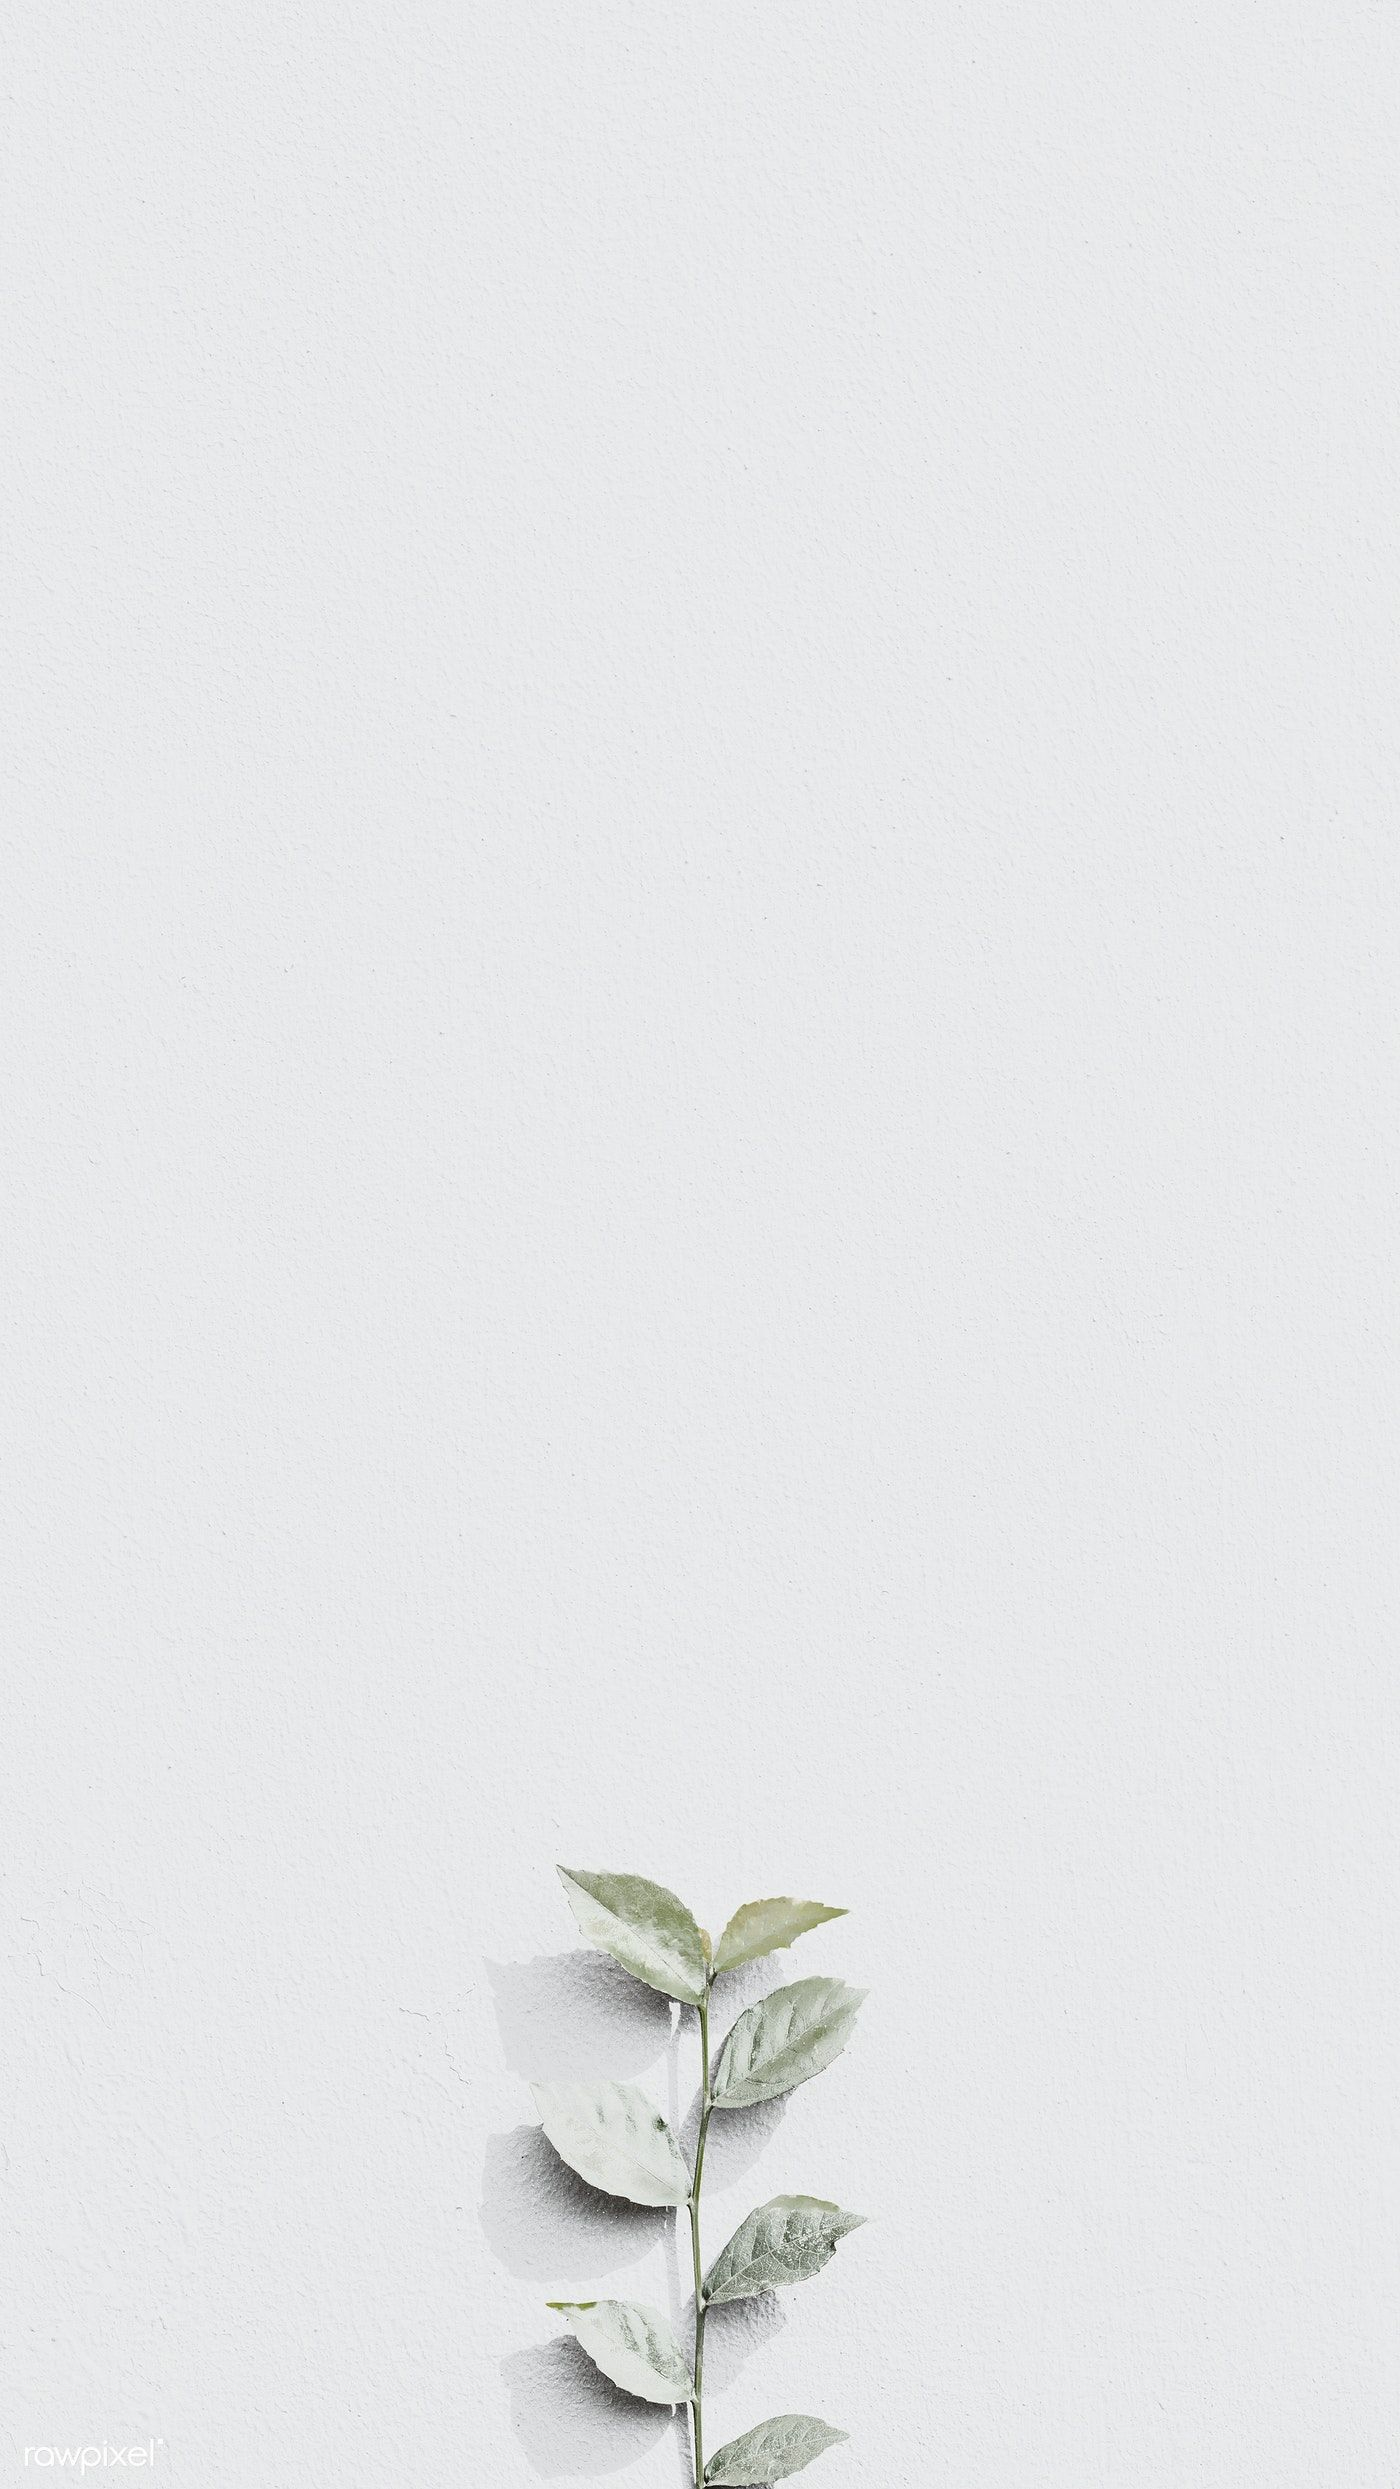 Download Premium Image Of White Plant Branch On A Gray Brick Wall In White Wallpaper For Iphone Pastel Background Wallpapers White Background Wallpaper